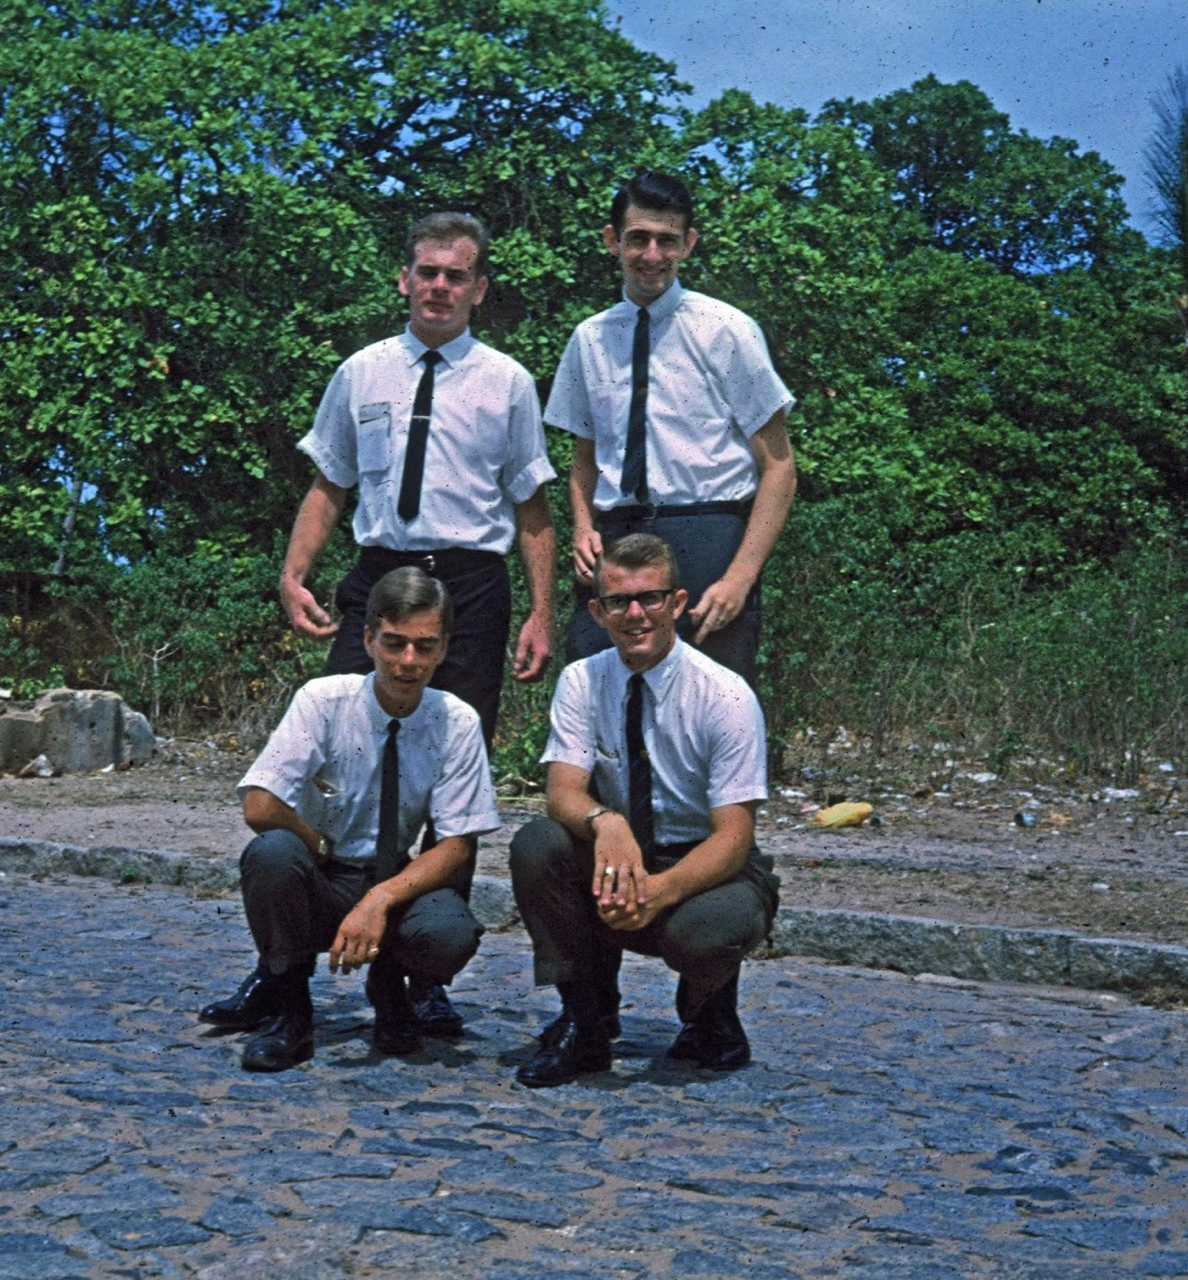 The four missionaries serving in Fortaleza, Brazil, in 1966 – clockwise from top left, Elder Cordell Finlinson, Elder Craig Evans, Elder John Beck, and Elder Robert Dionne.